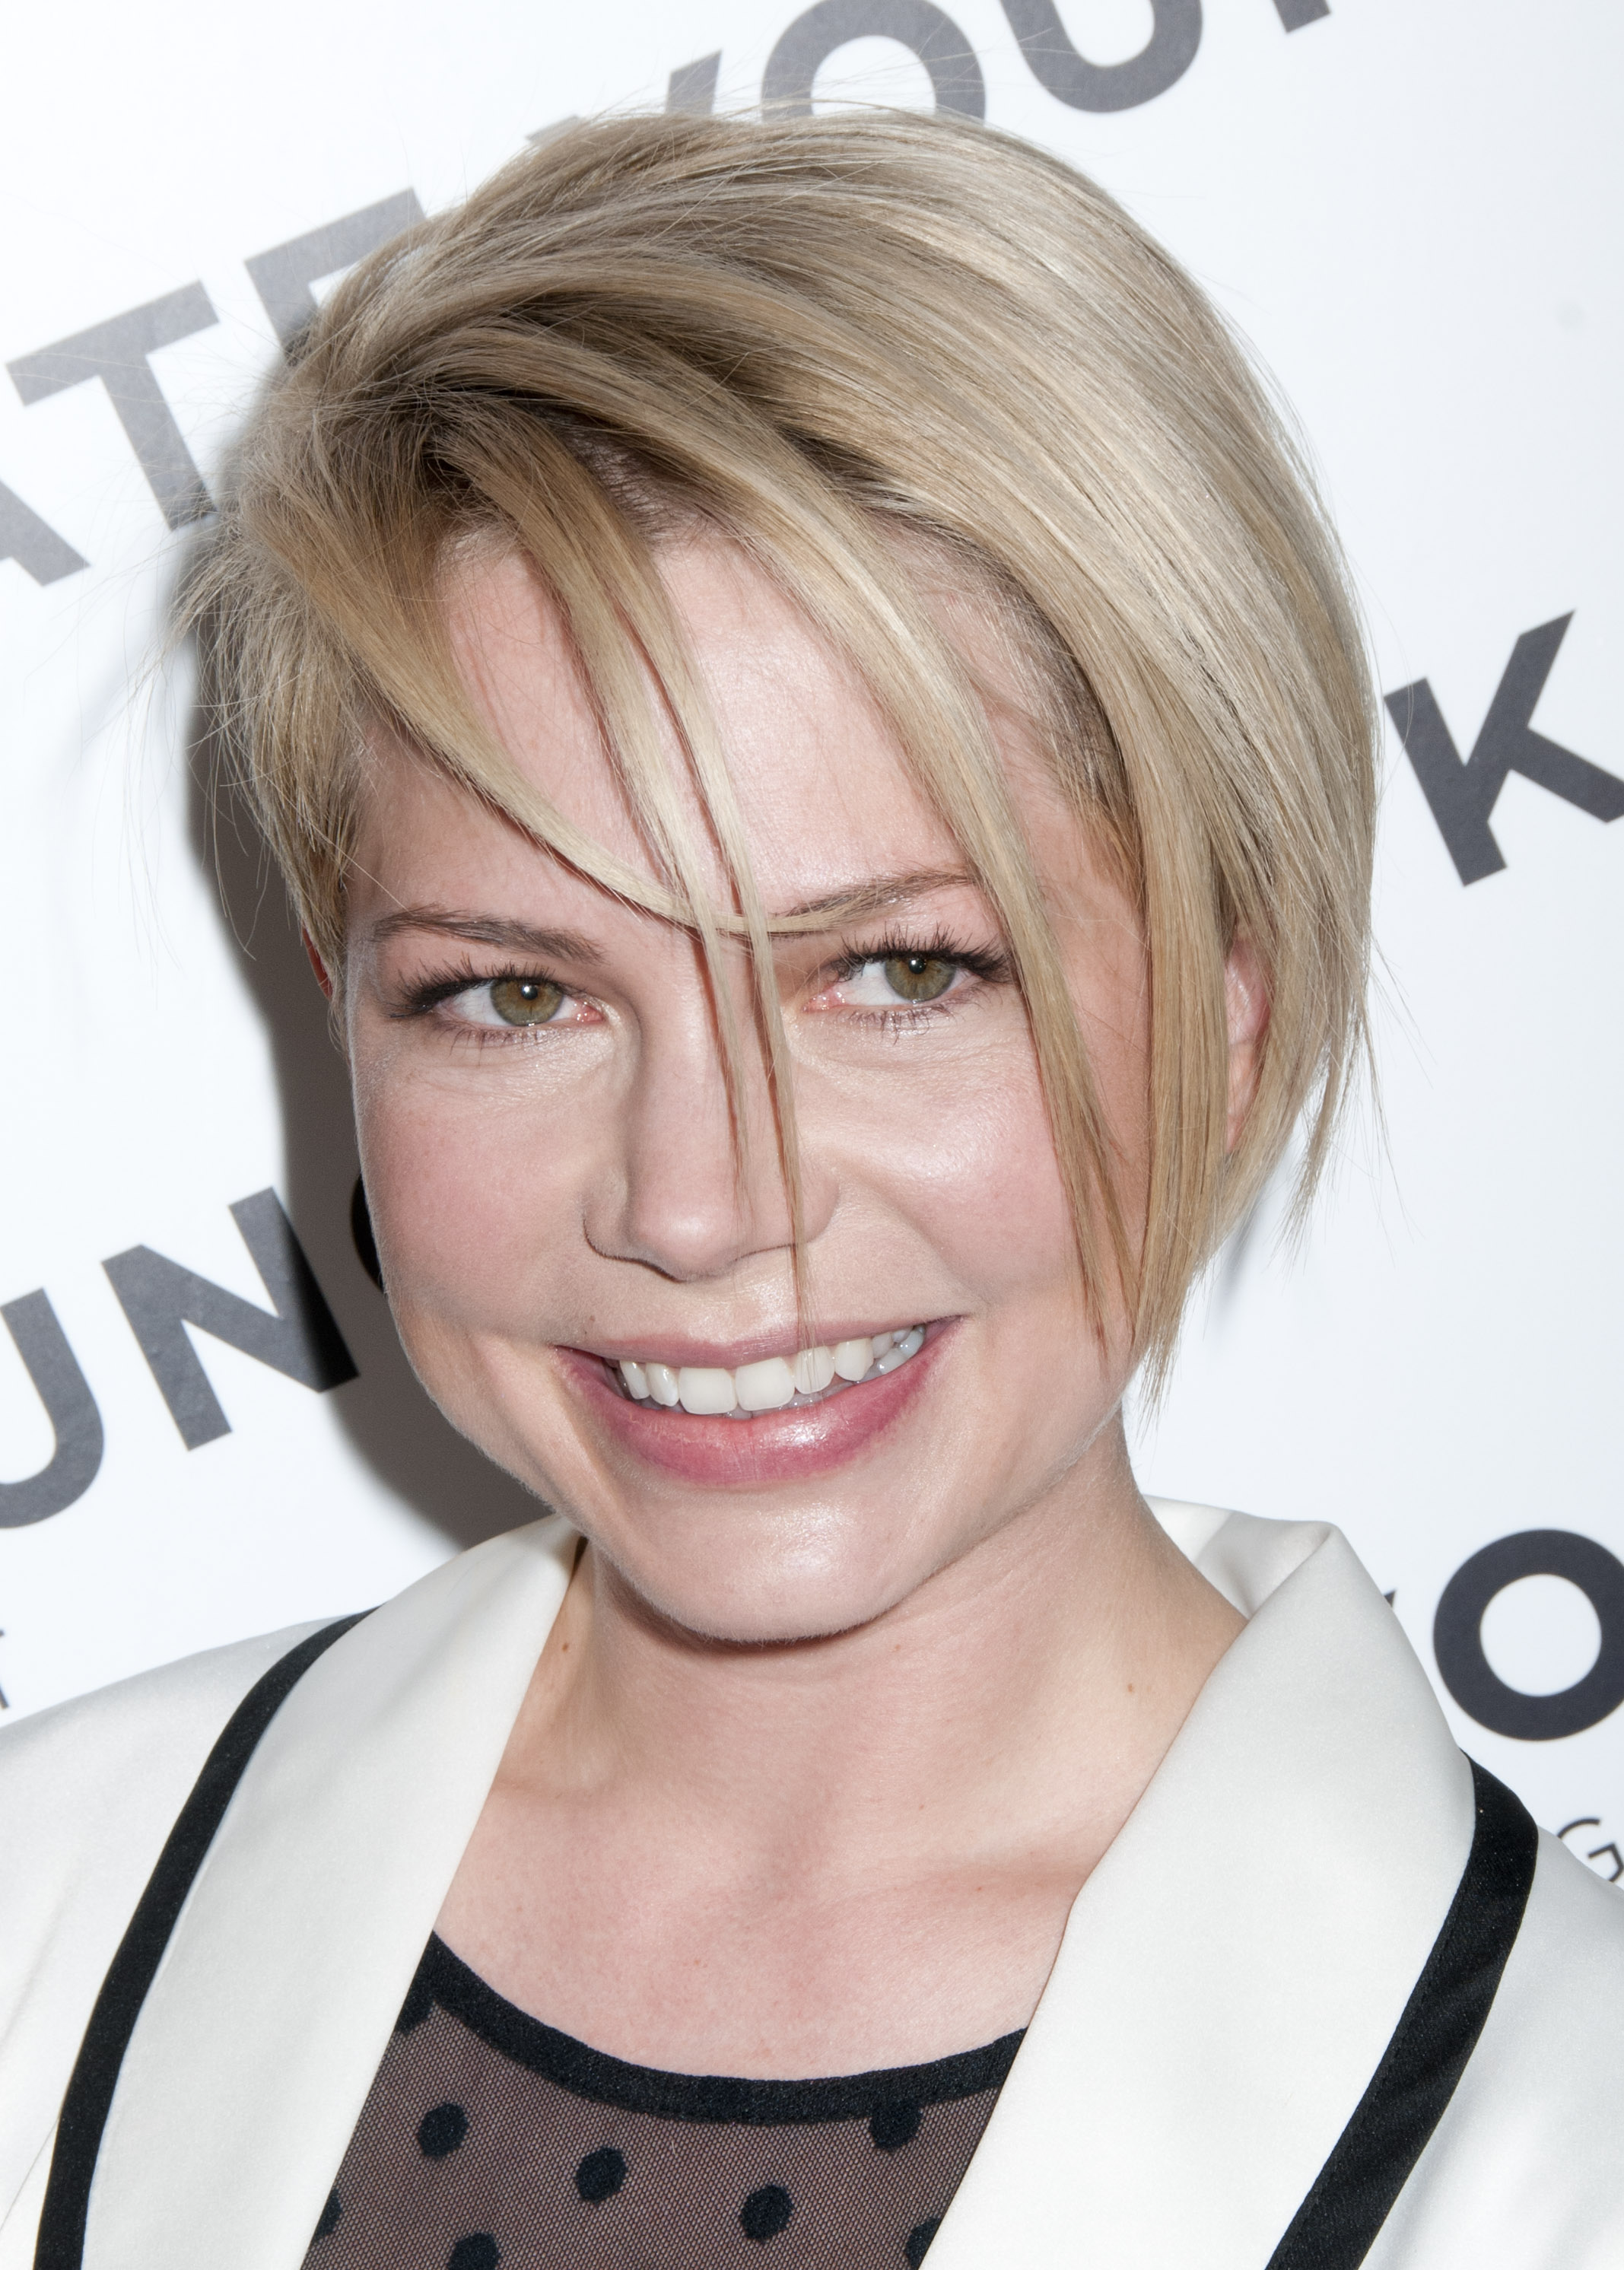 Michelle Williams(actress) photo 230 of 351 pics ... Michelle Williams Actress